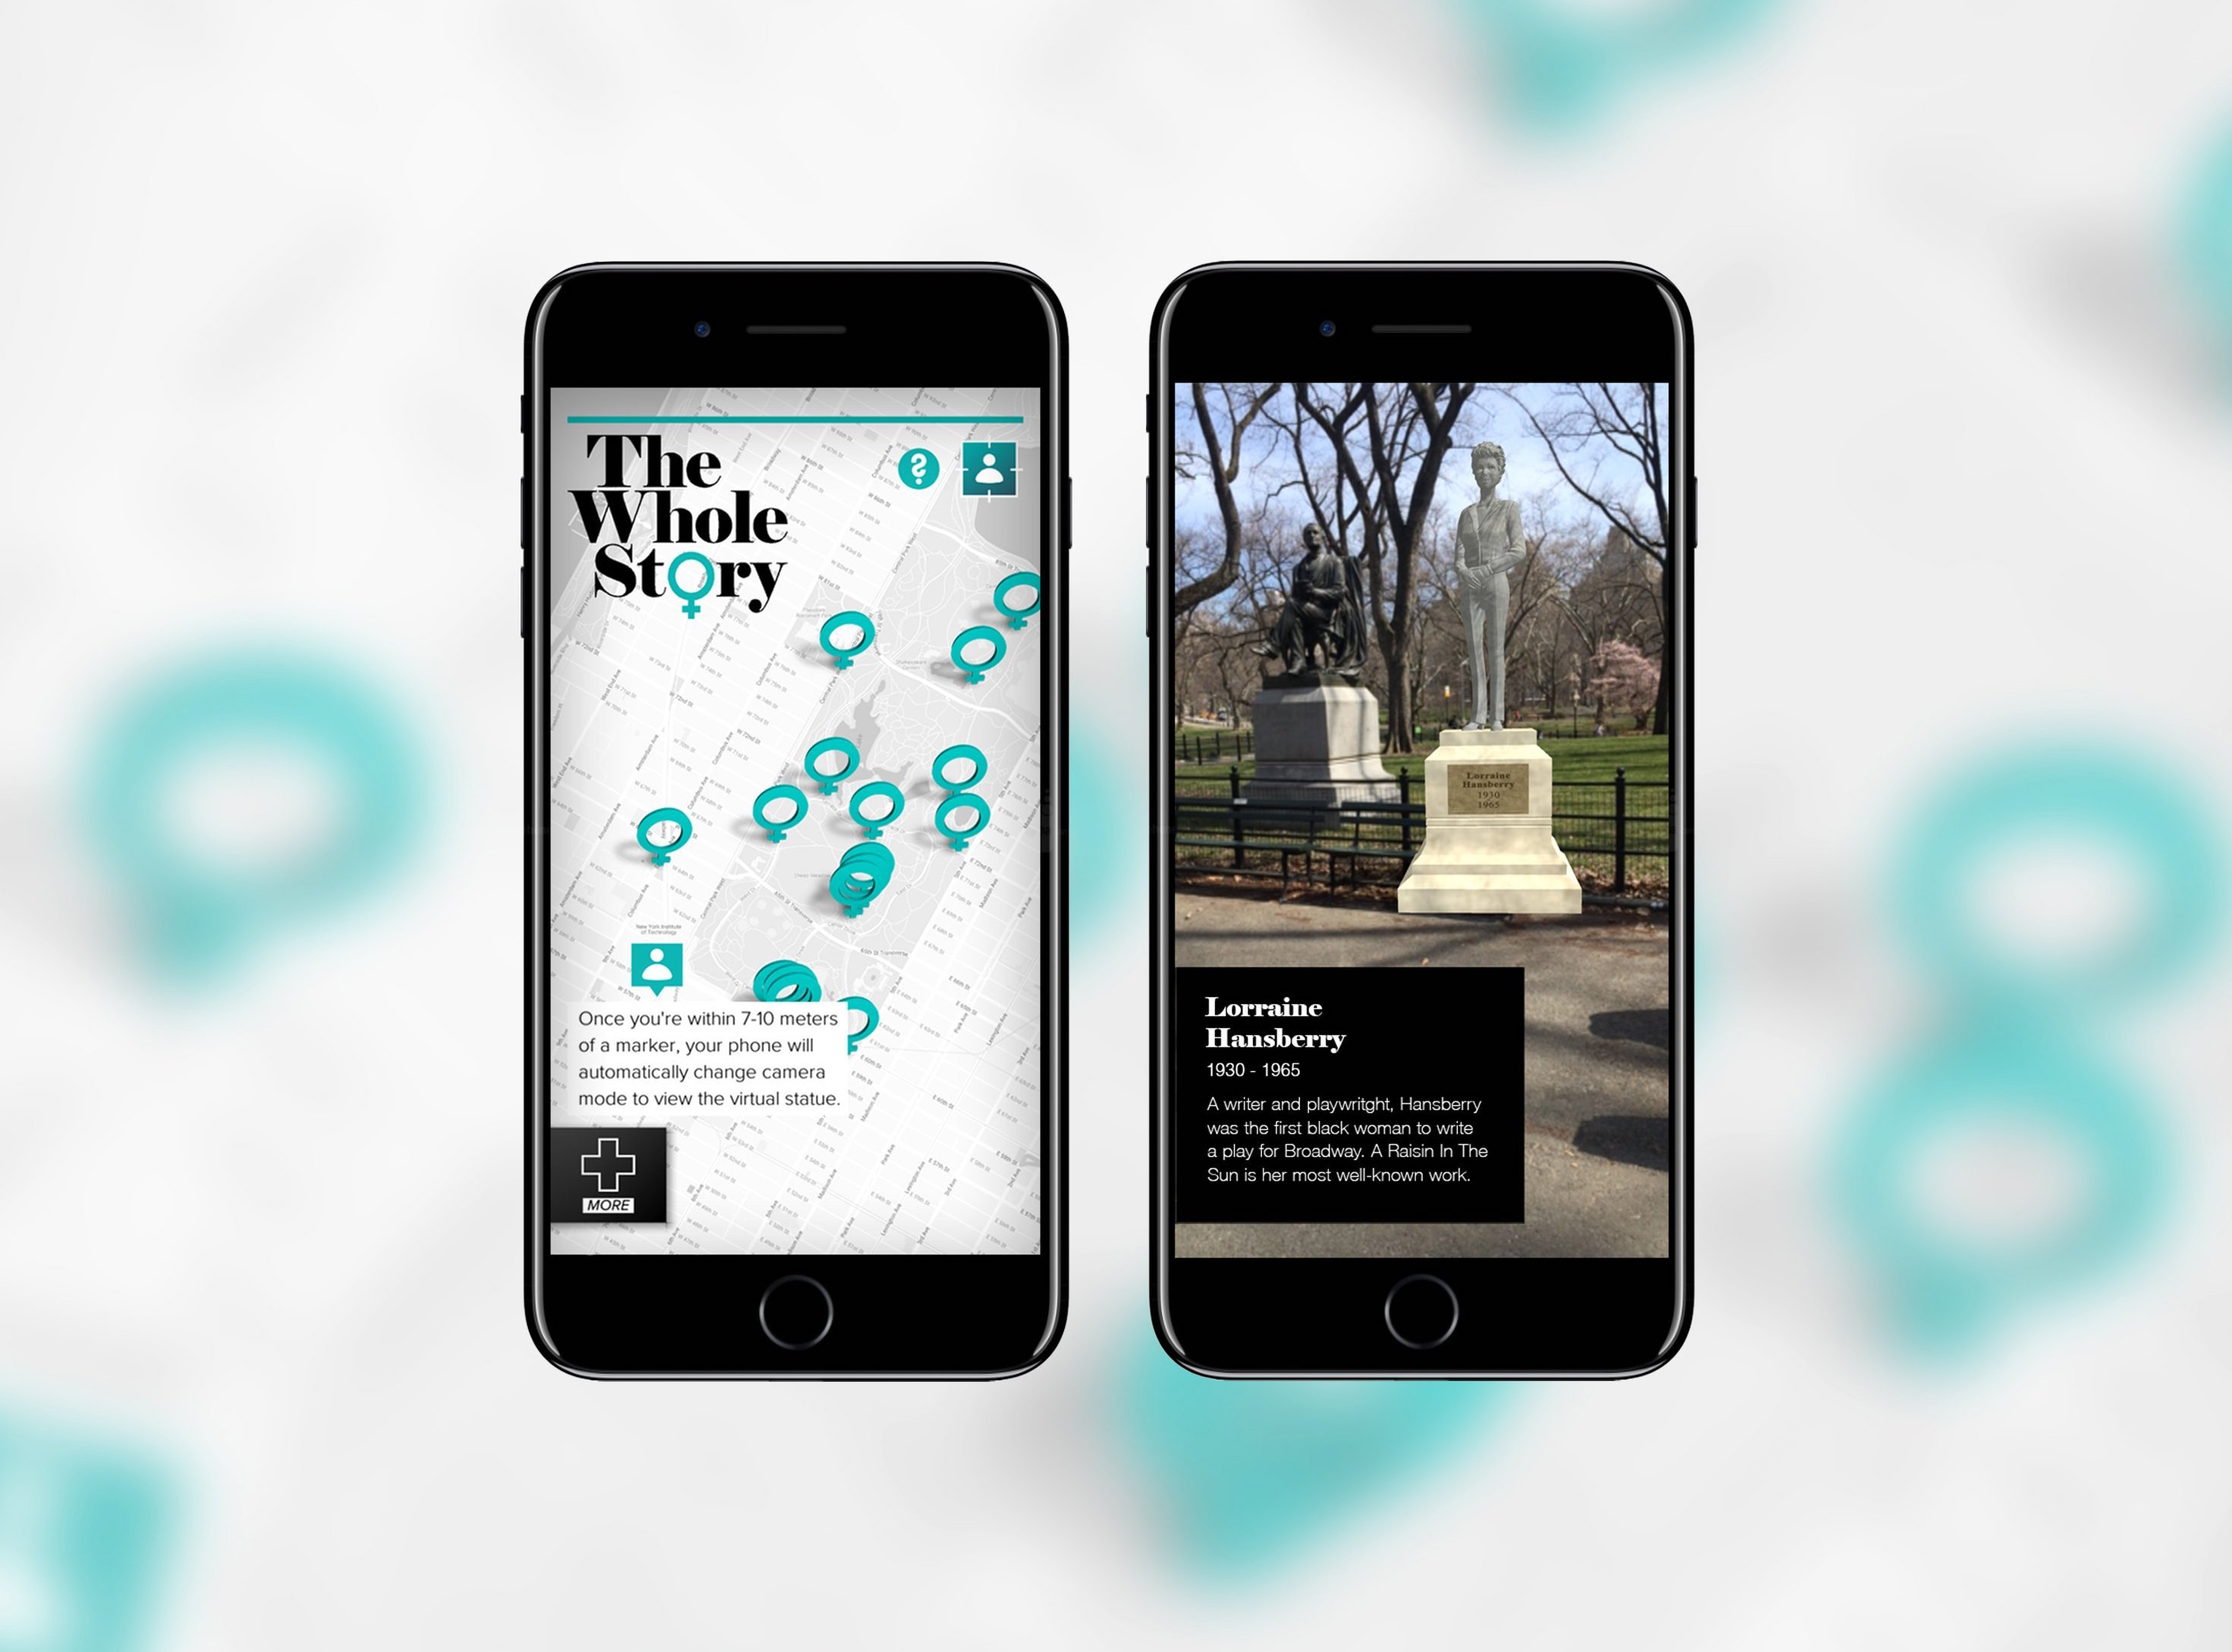 With new app, important women of history get overdue virtual statues